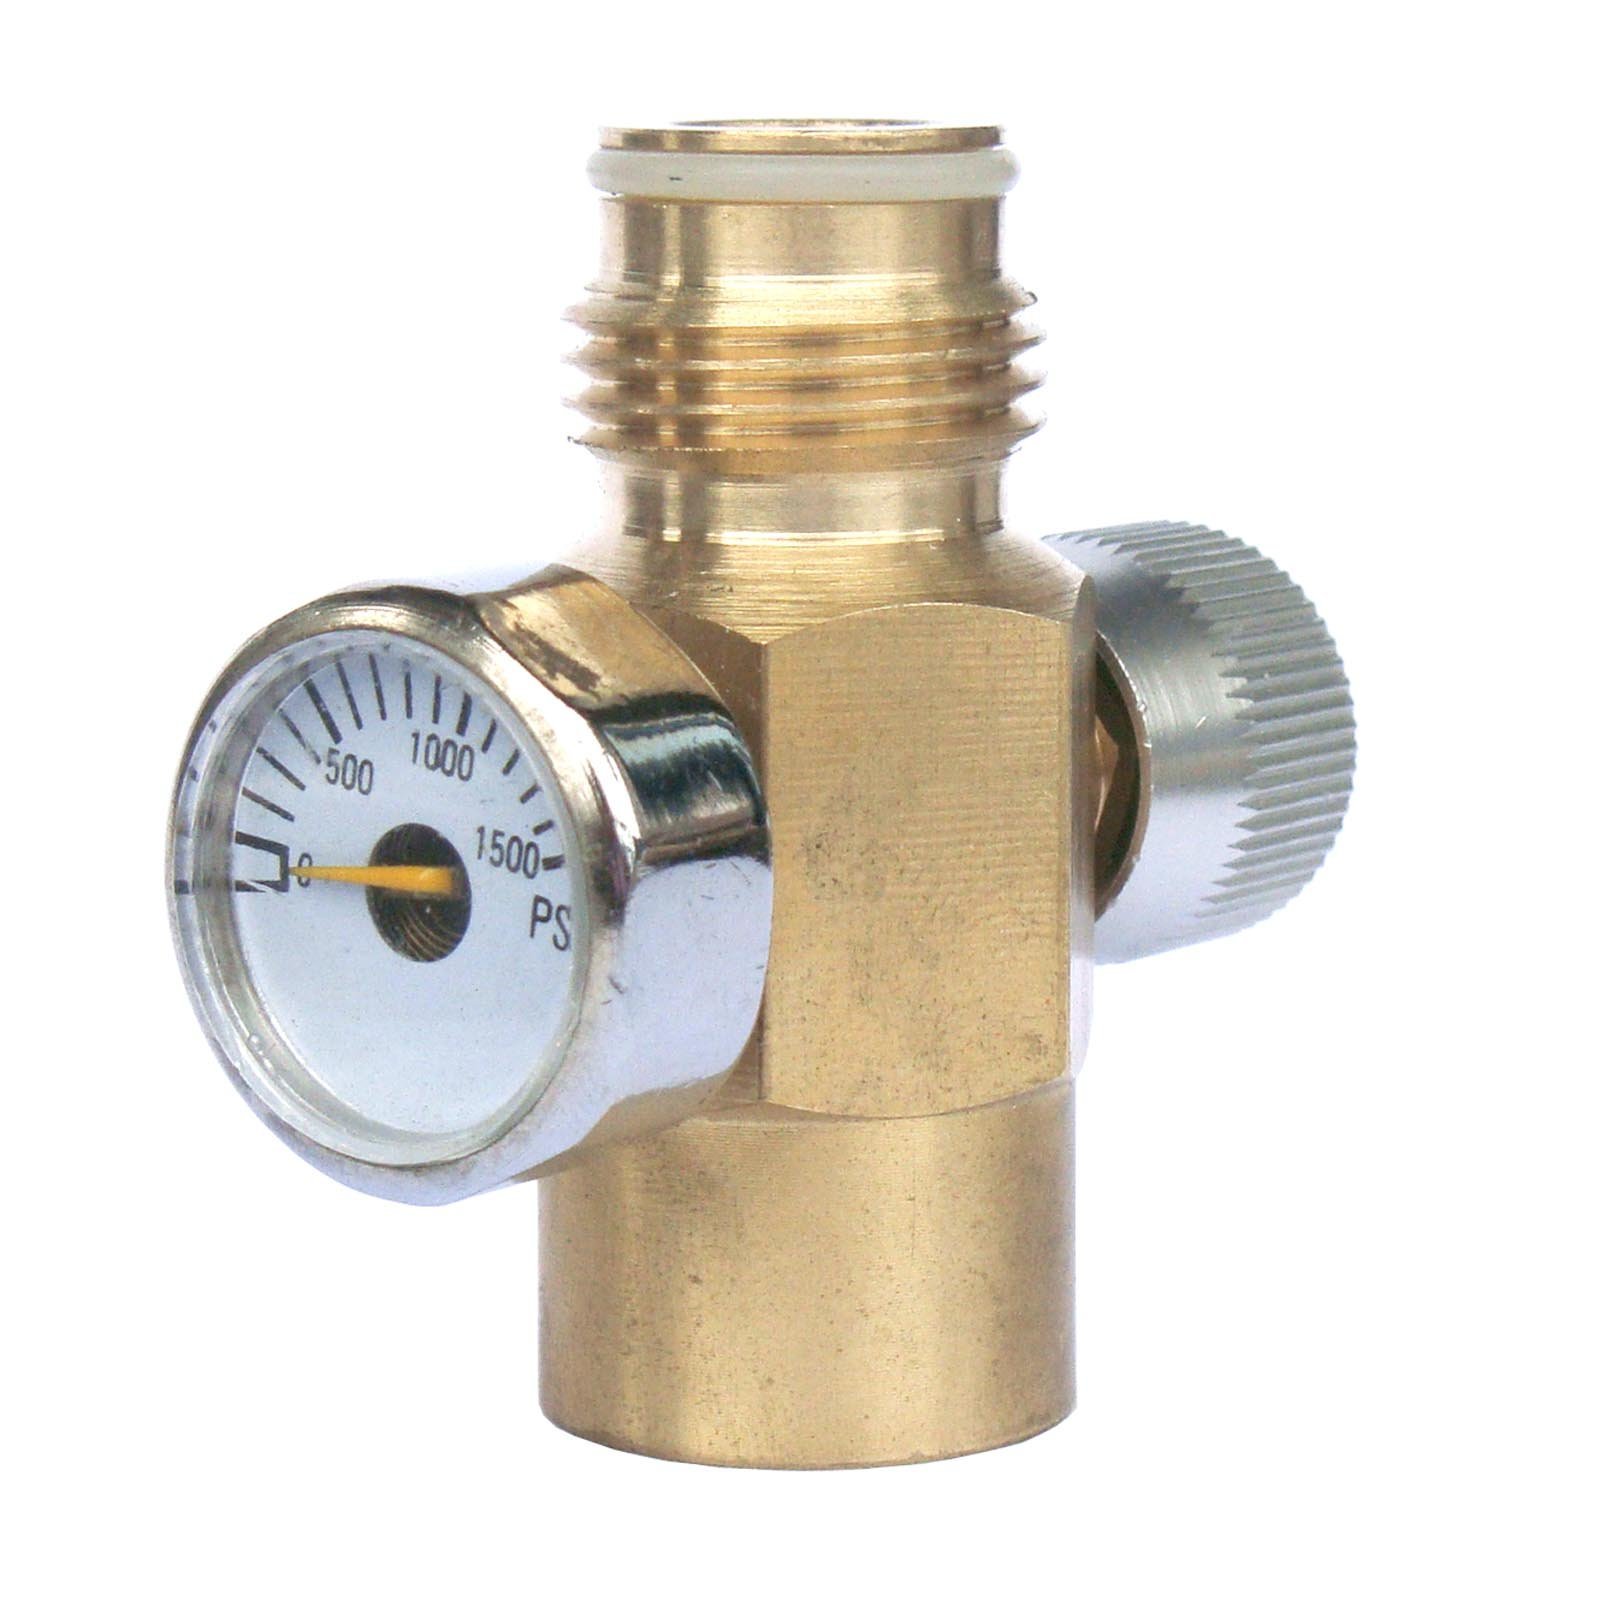 New paintball Inner Thread CO2 Tank On/Off Valve with 1500 Psi Gauge by GFSP Outdoor Sports